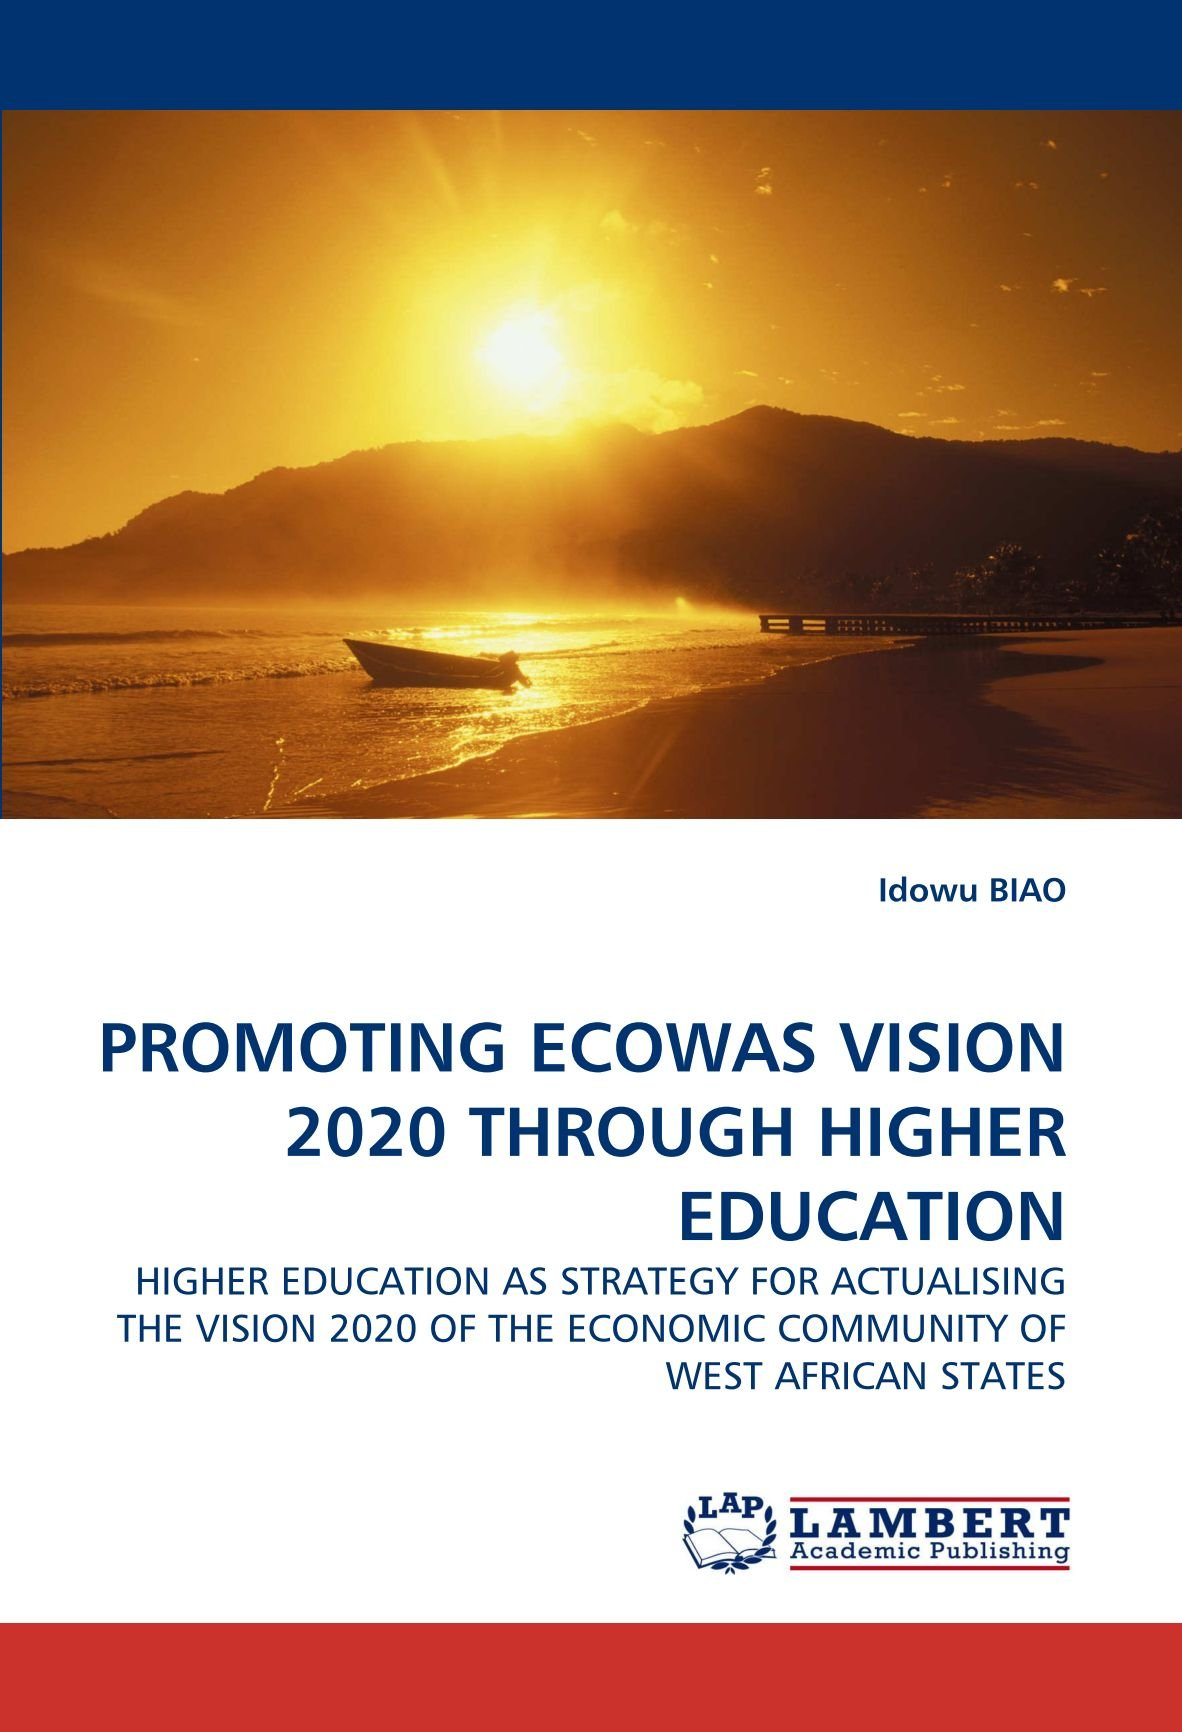 Download PROMOTING ECOWAS VISION 2020 THROUGH HIGHER EDUCATION: HIGHER EDUCATION AS STRATEGY FOR ACTUALISING THE VISION 2020 OF THE ECONOMIC COMMUNITY OF WEST AFRICAN STATES pdf